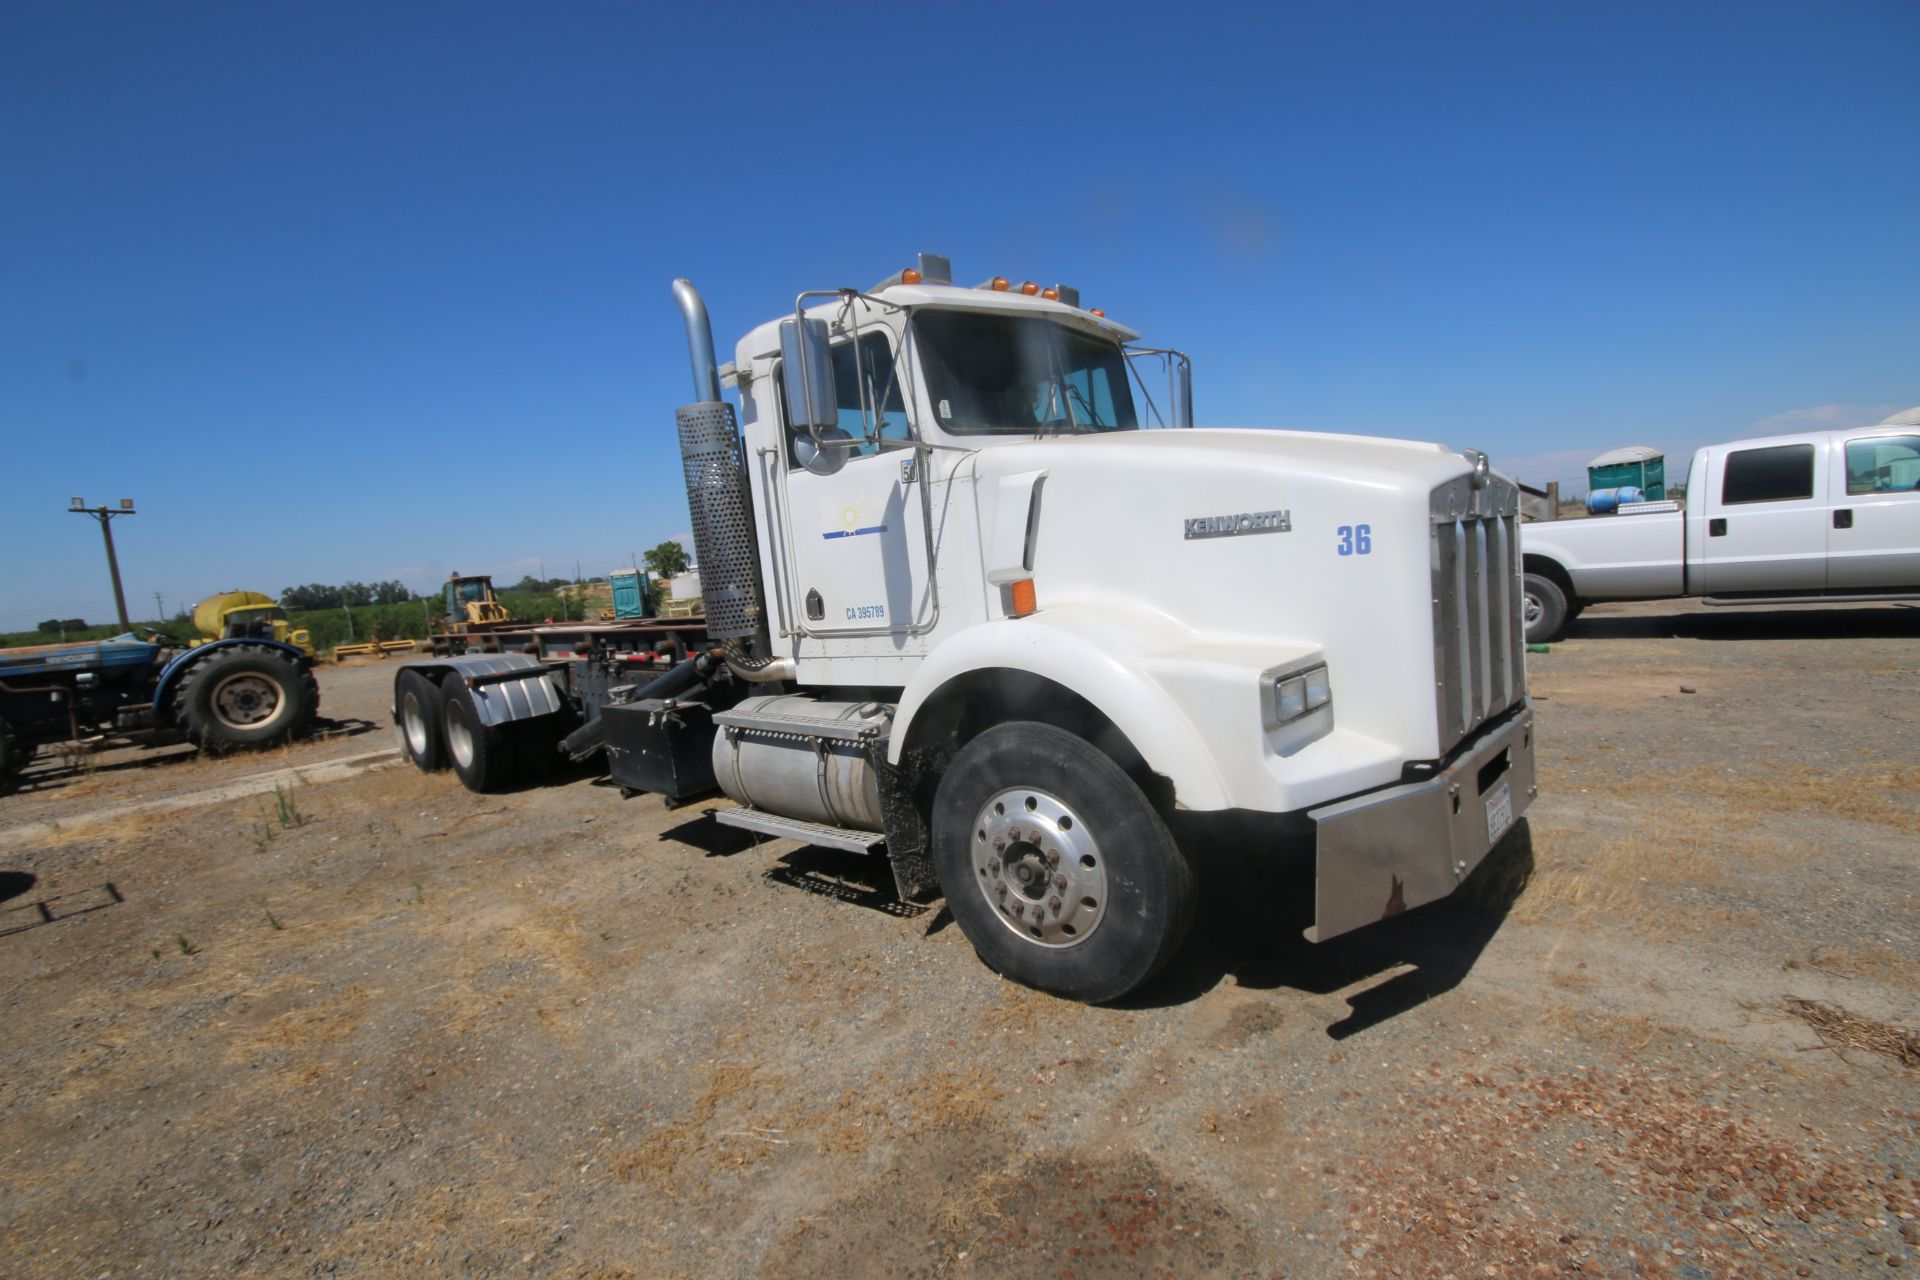 1996 Kenworth 3-Axle Roll-Off Straight Truck, VIN #: 1XKDDB9XOTS687107, with 24,722 Miles, License - Image 2 of 30